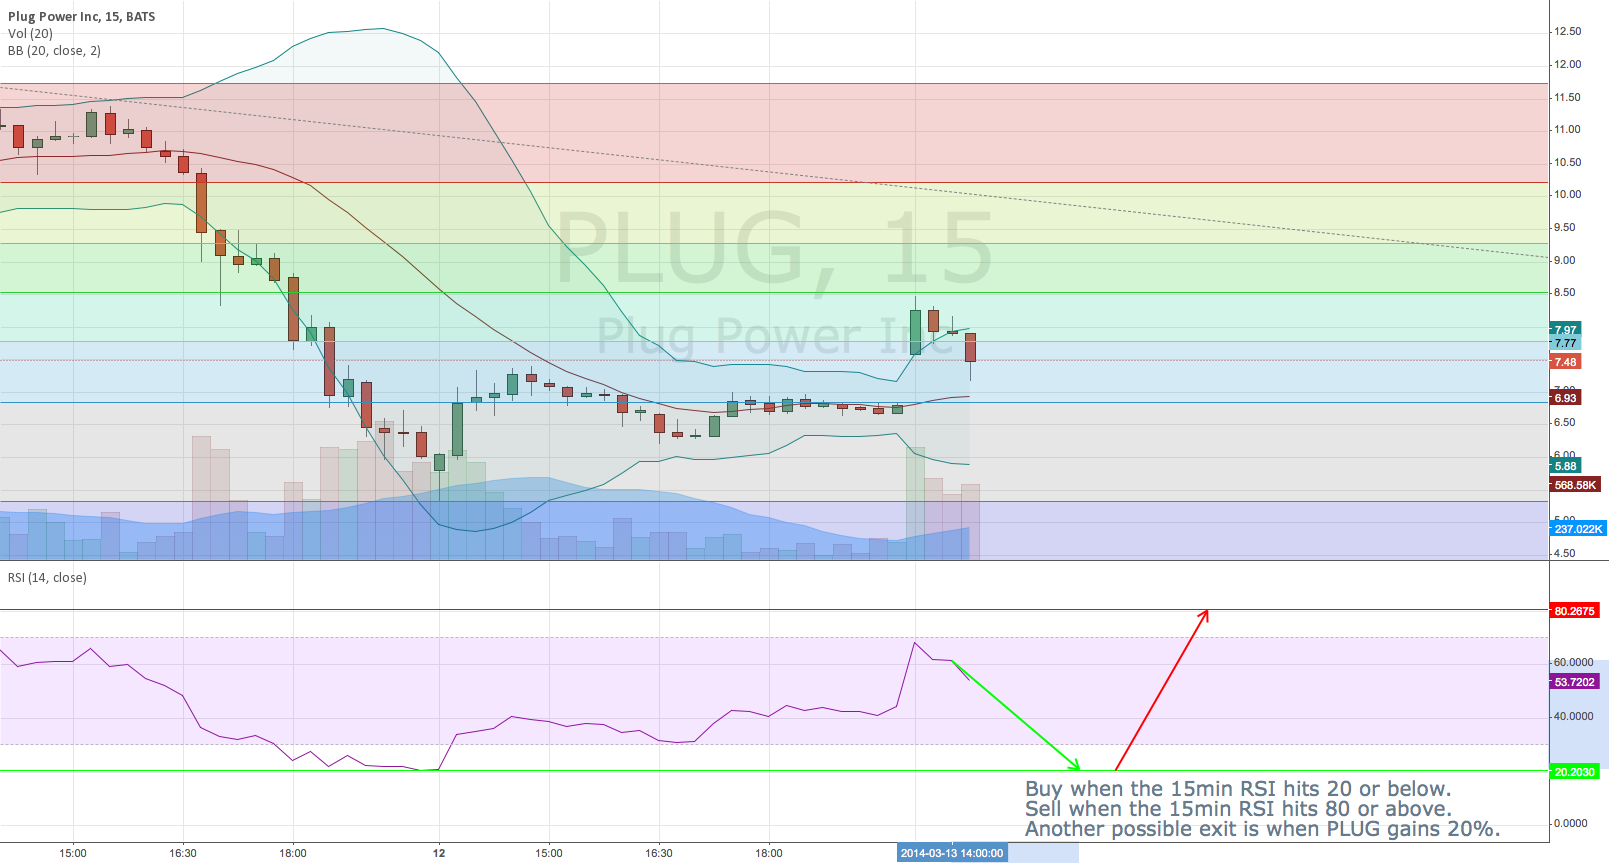 PLUG Short Term RSI Strategy Using 15 min Chart.